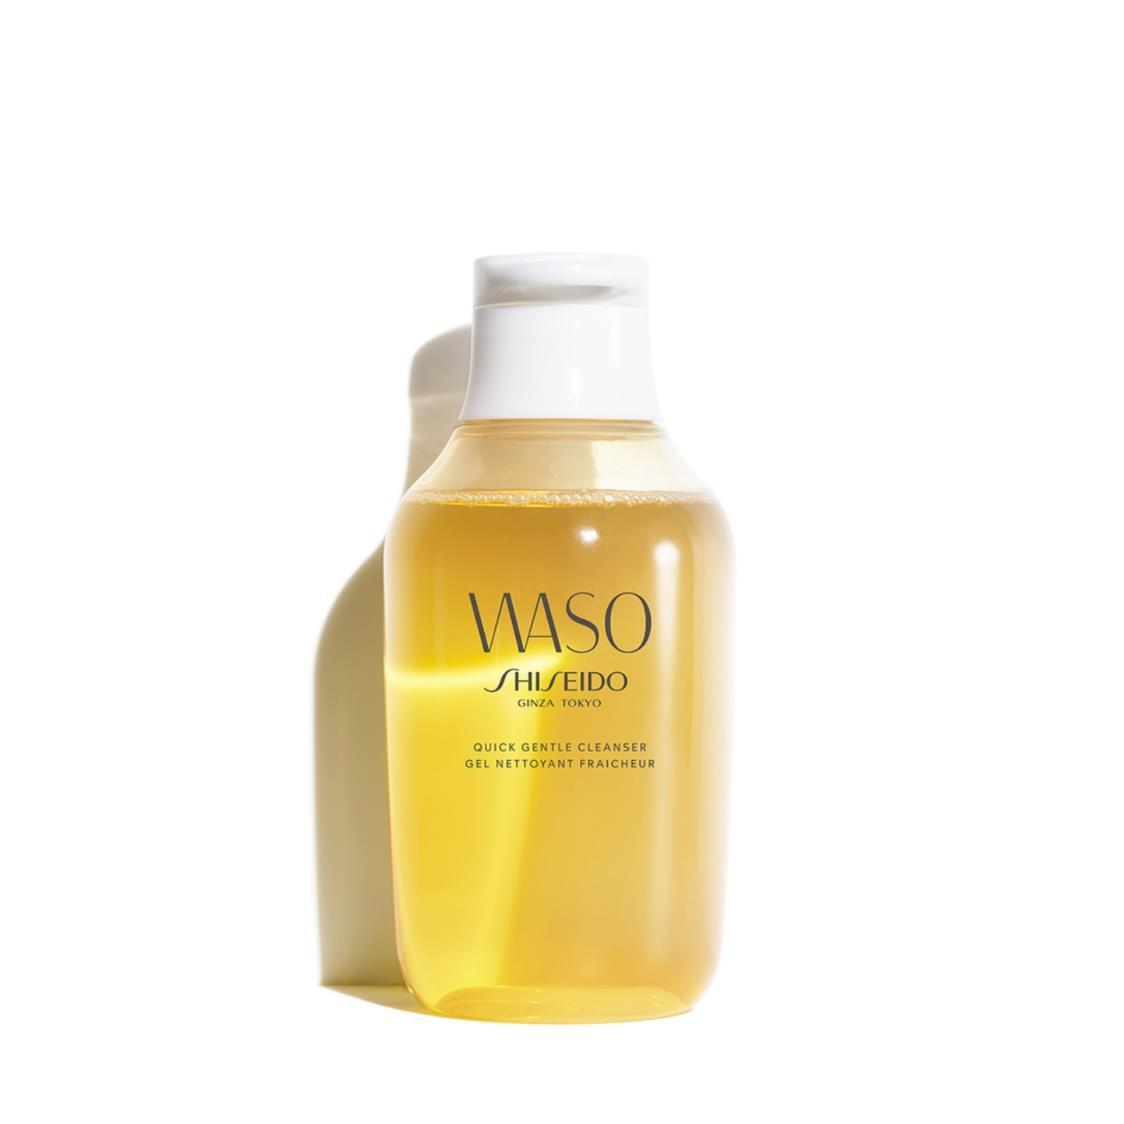 WASO Quick Gentle Cleanser 150ml